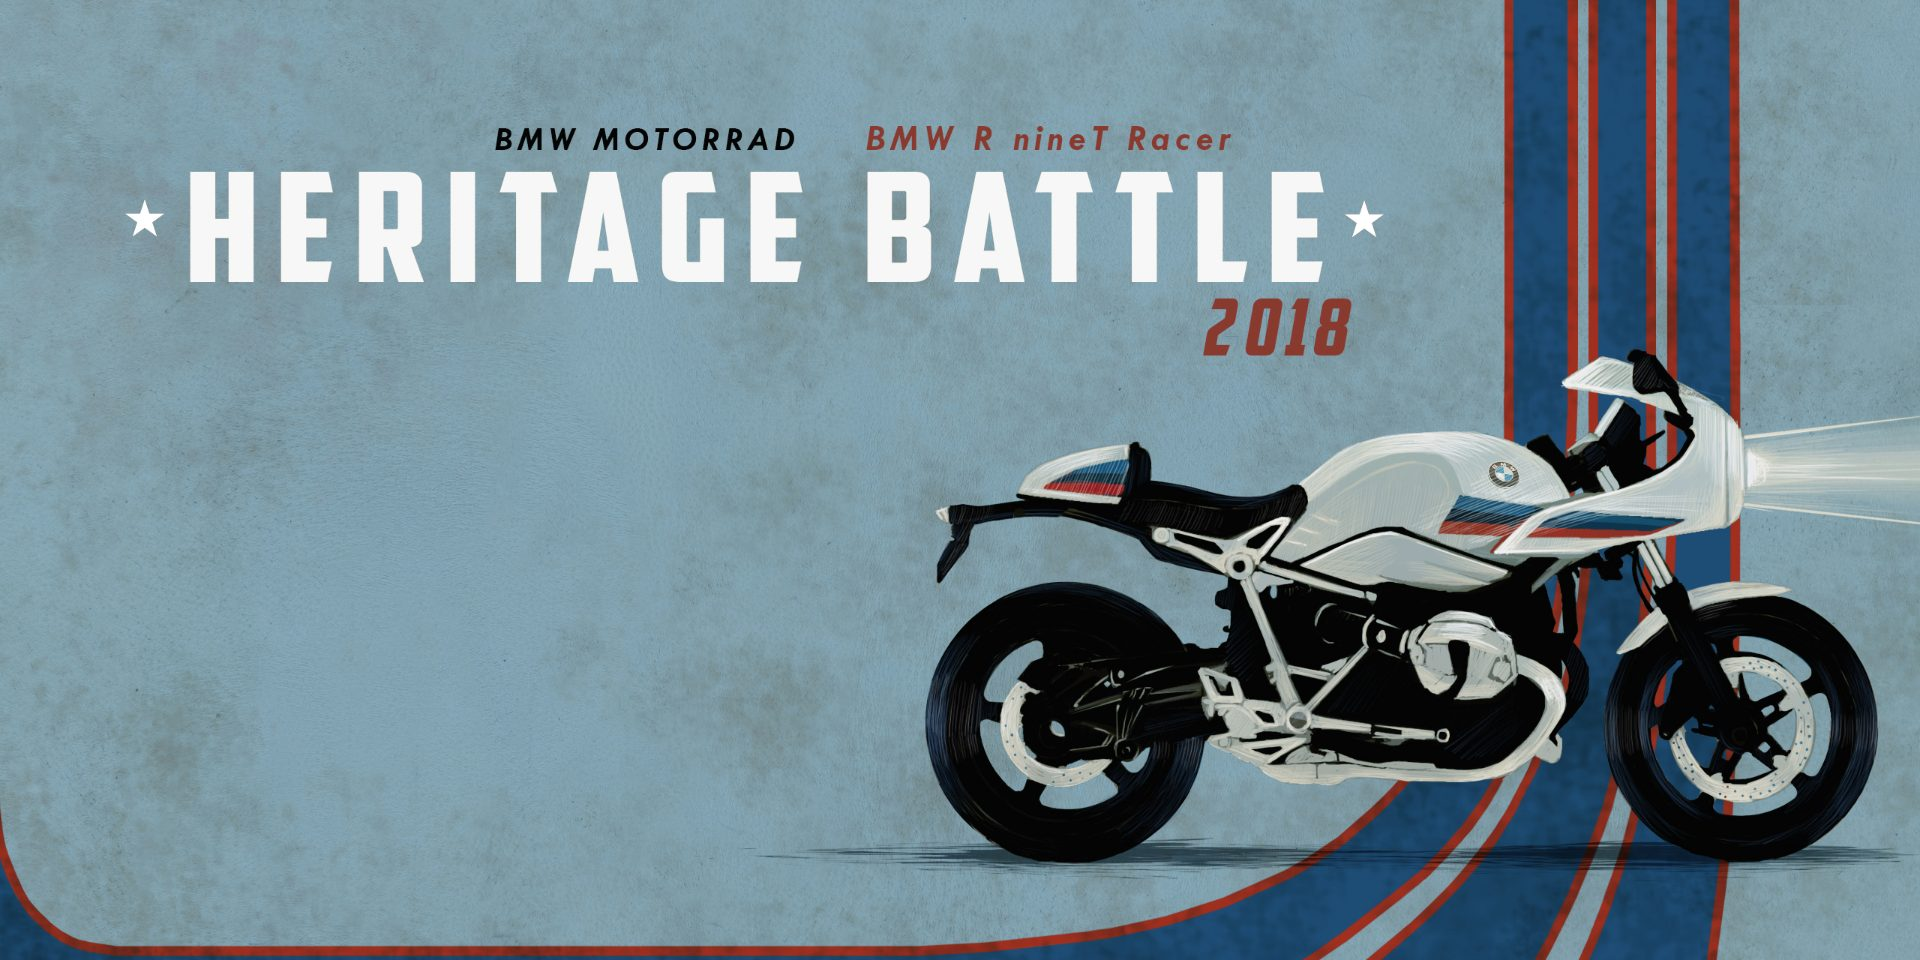 Heritage Battle 2018